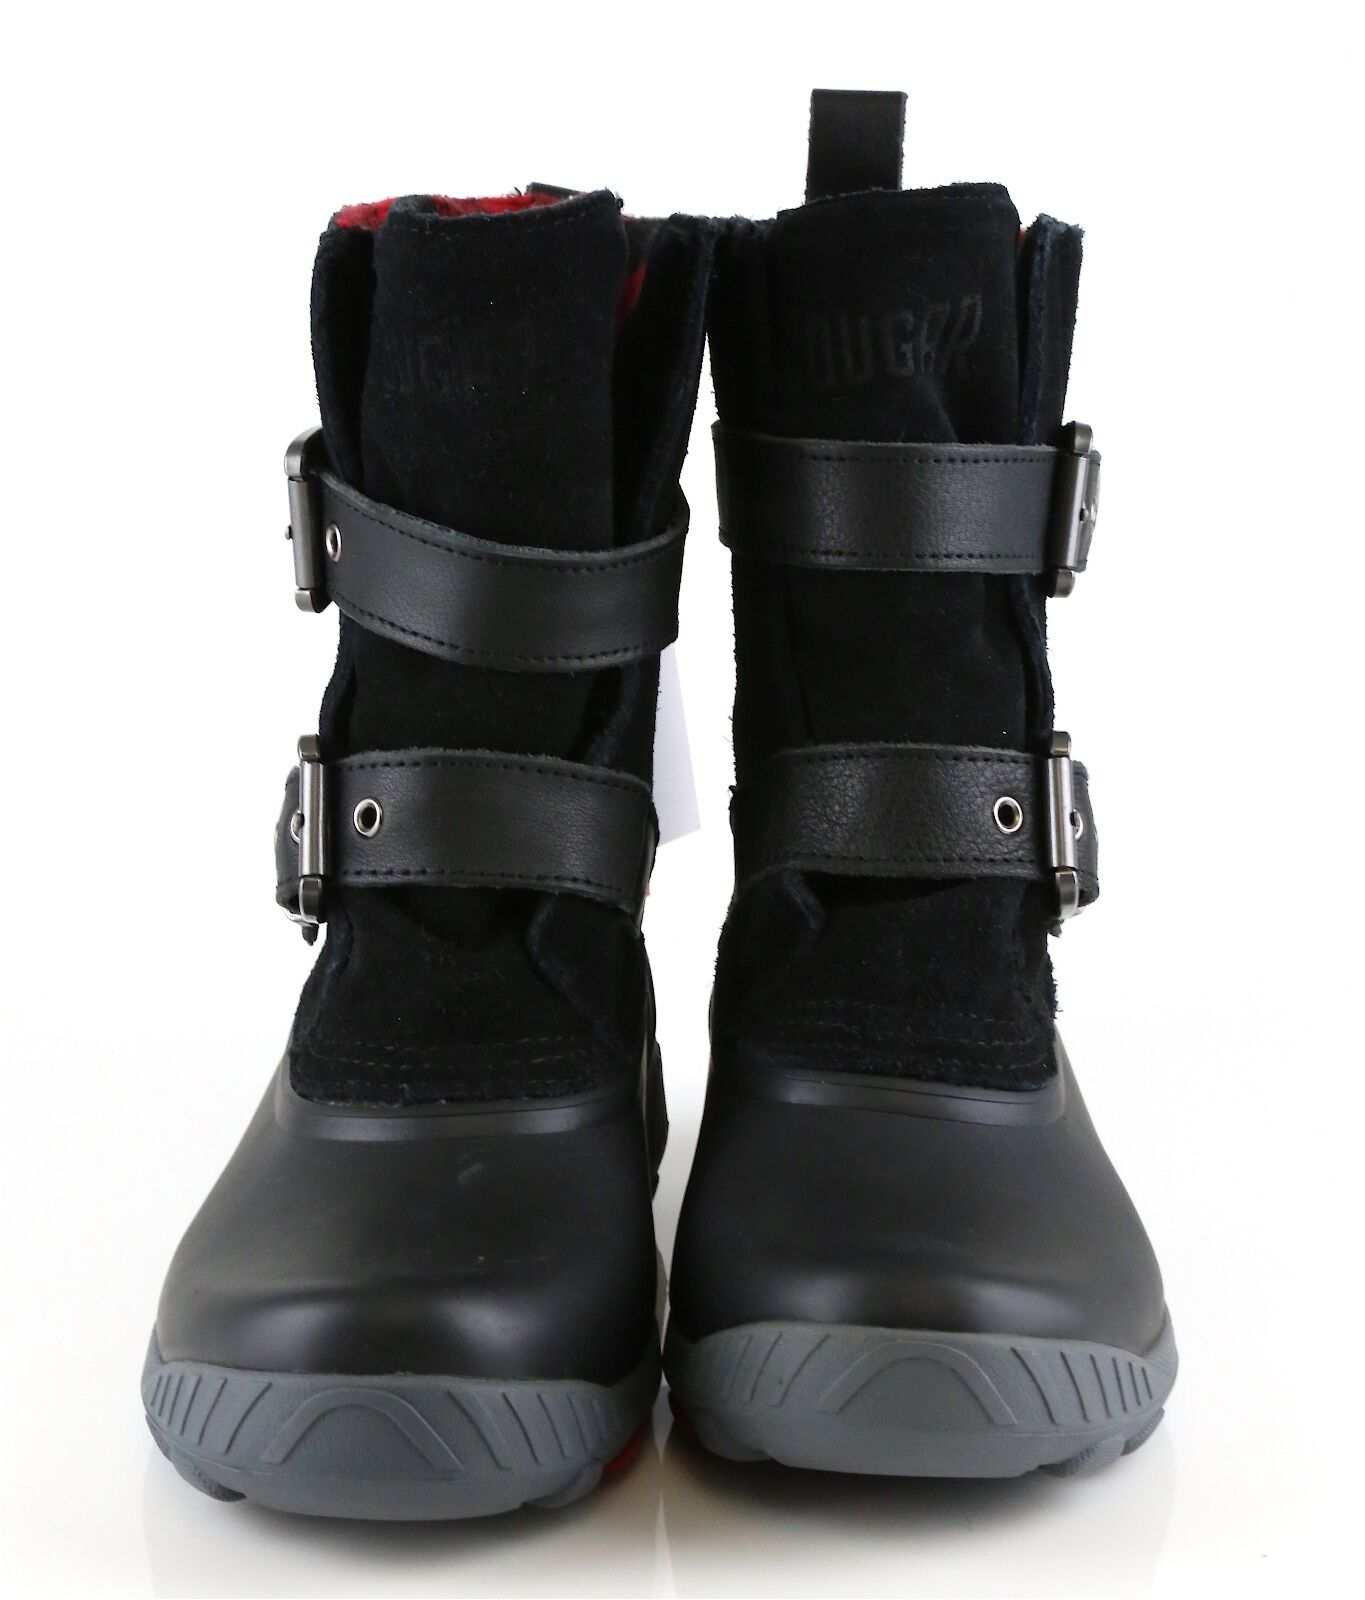 Cougar MAPLE CREEK Black Waterproof Boots 8483 Woman's Size 6 M NEW!